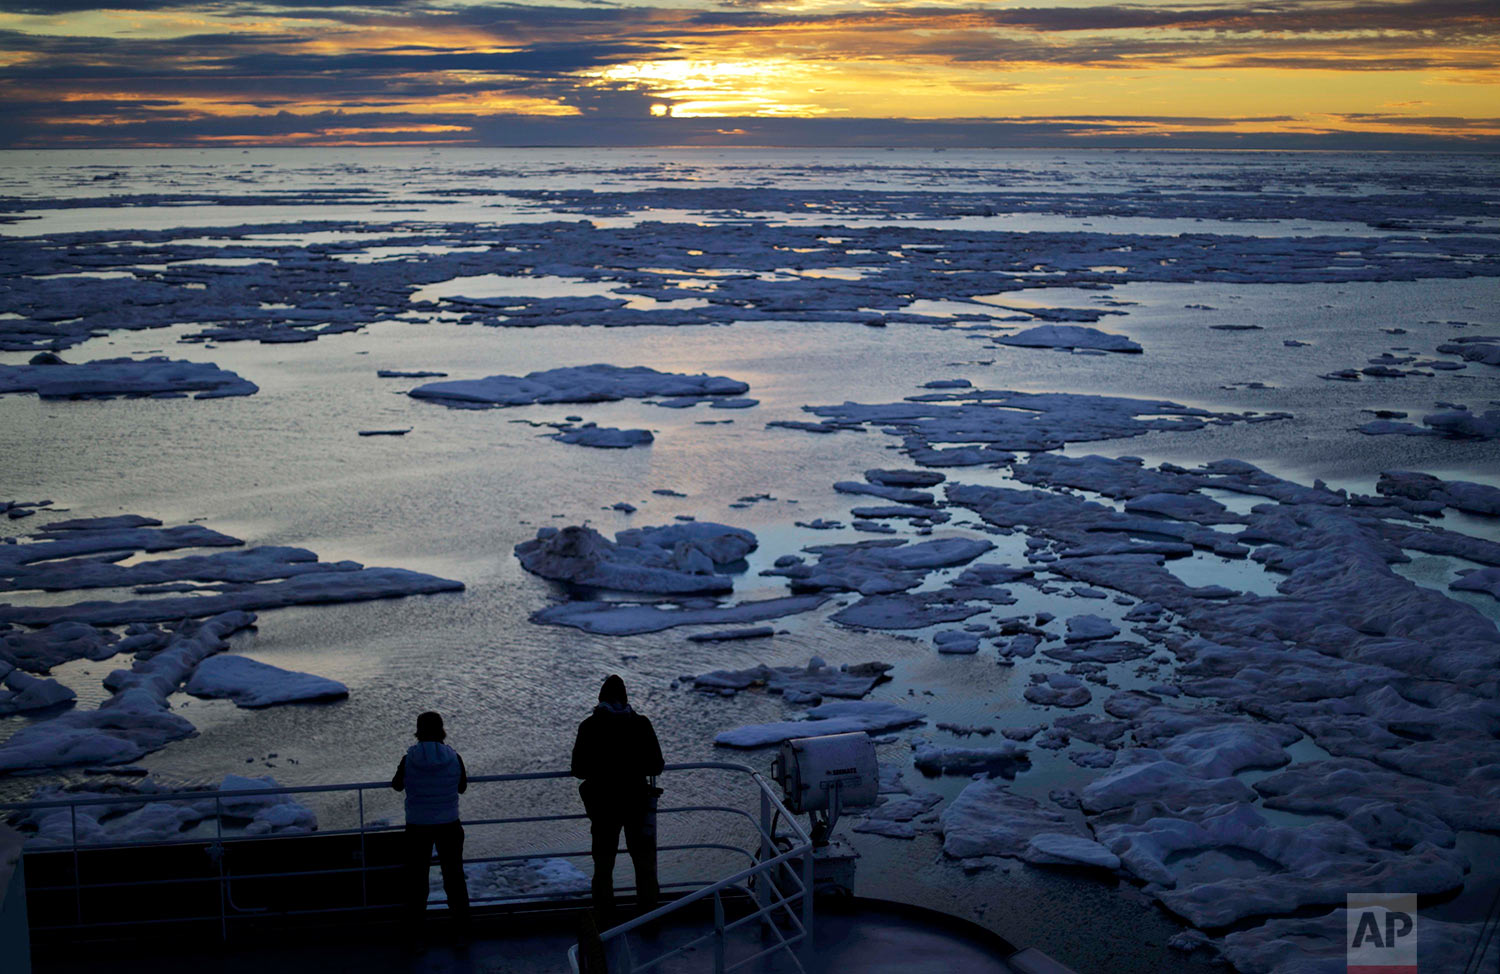 Researchers look out from the Finnish icebreaker MSV Nordica as the sun sets over sea ice floating on the Victoria Strait along the Northwest Passage in the Canadian Arctic Archipelago, Friday, July 21, 2017. Sea ice plays an important role in the global climate system by cooling the surrounding water and air. It helps maintain ocean and atmospheric currents that affect weather which is characteristic for certain parts of the world, such as the comparatively mild temperatures found in western Europe. (AP Photo/David Goldman)